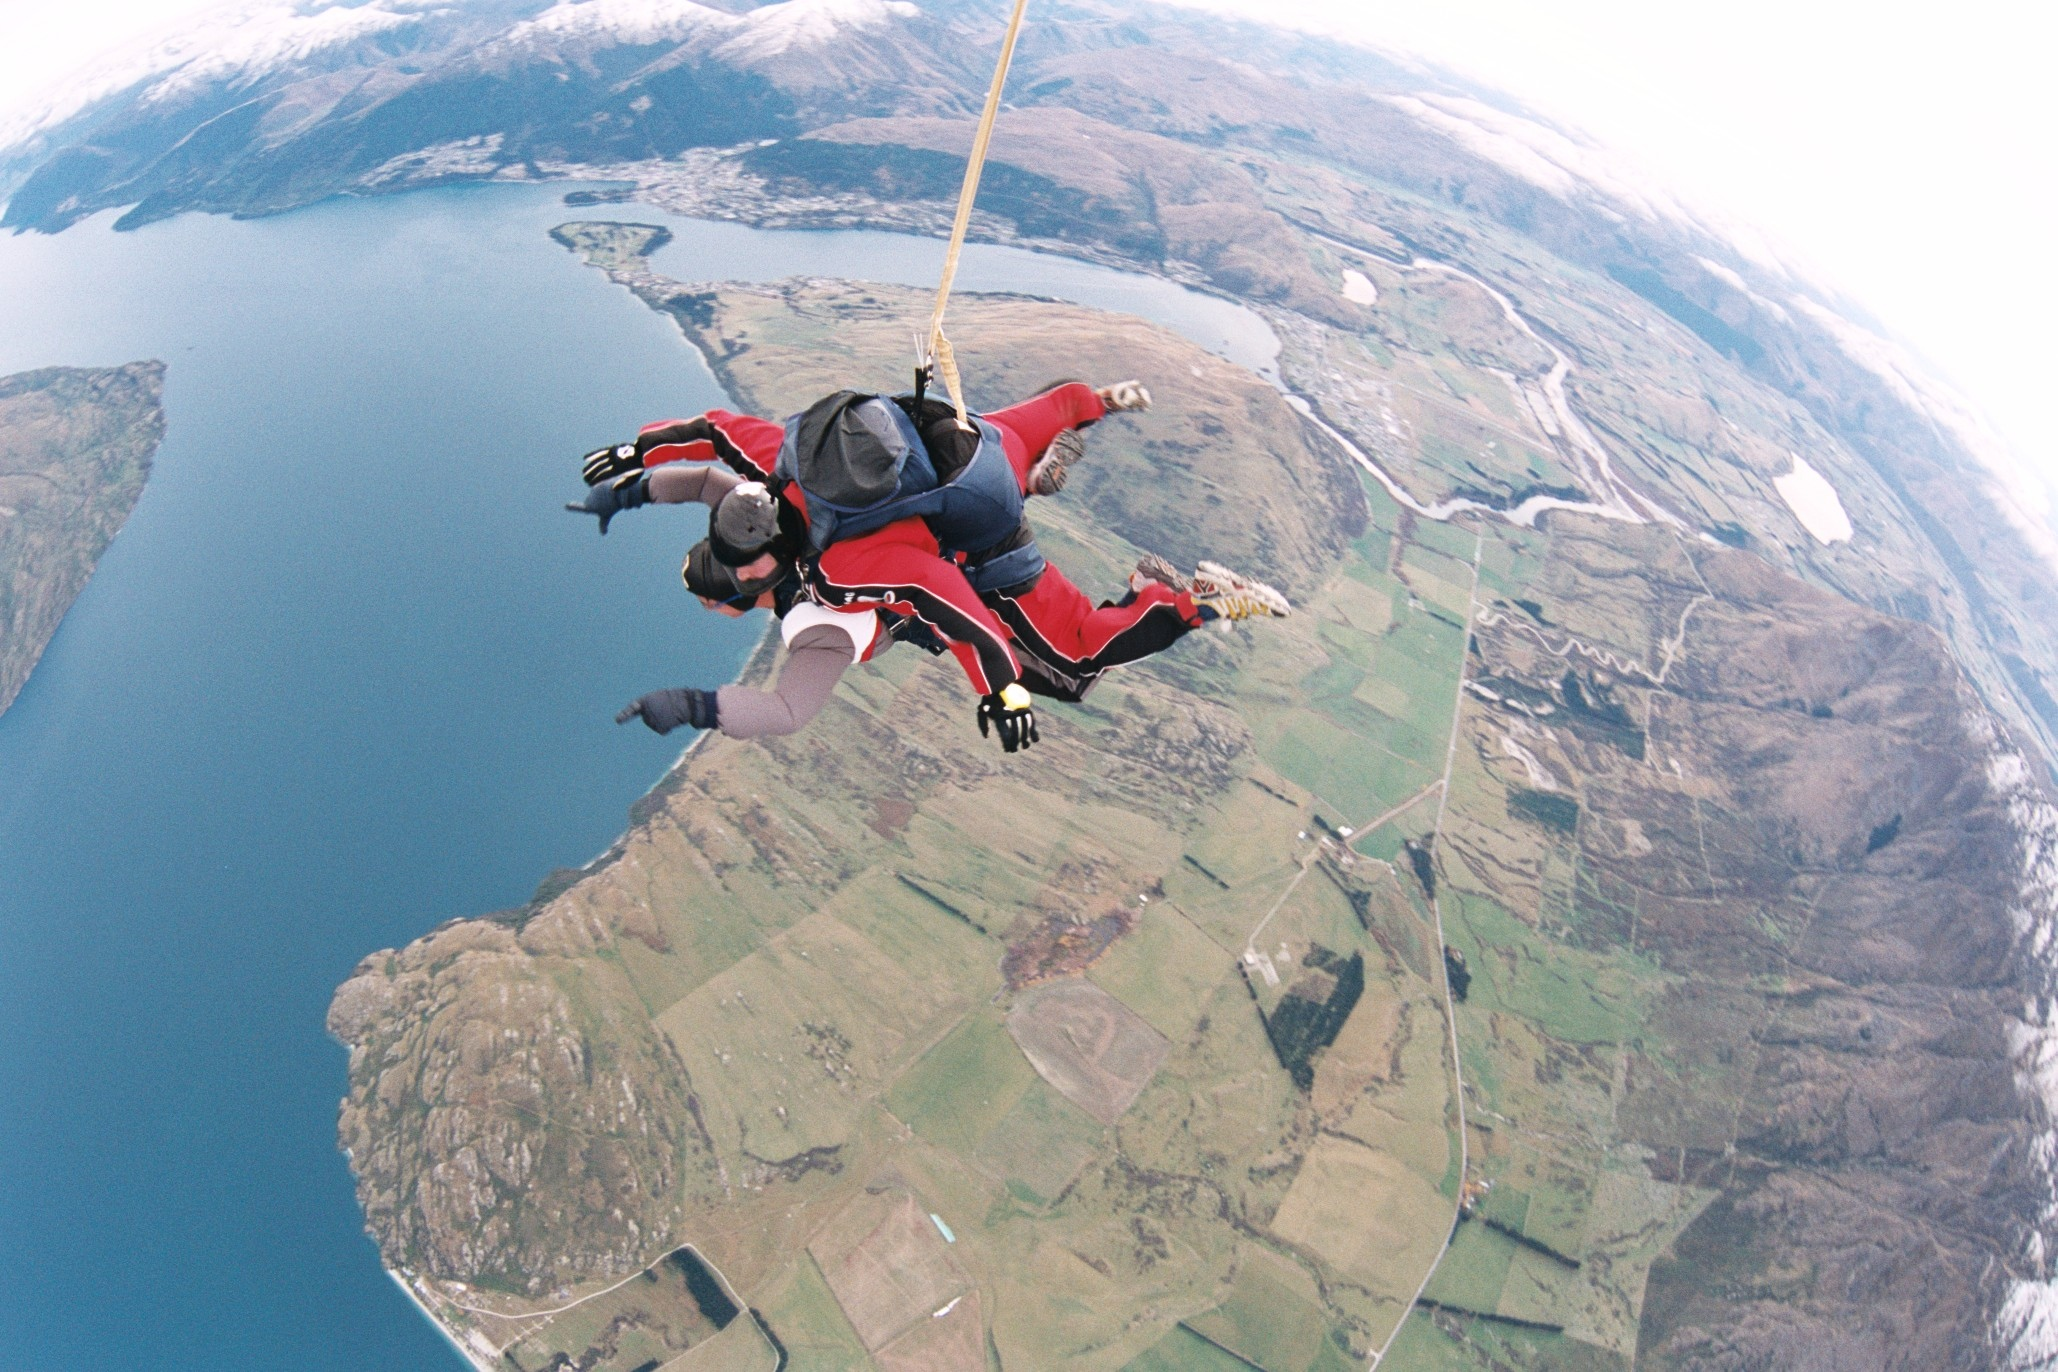 Photos of me sky diving in Quuenstown New Zealand.